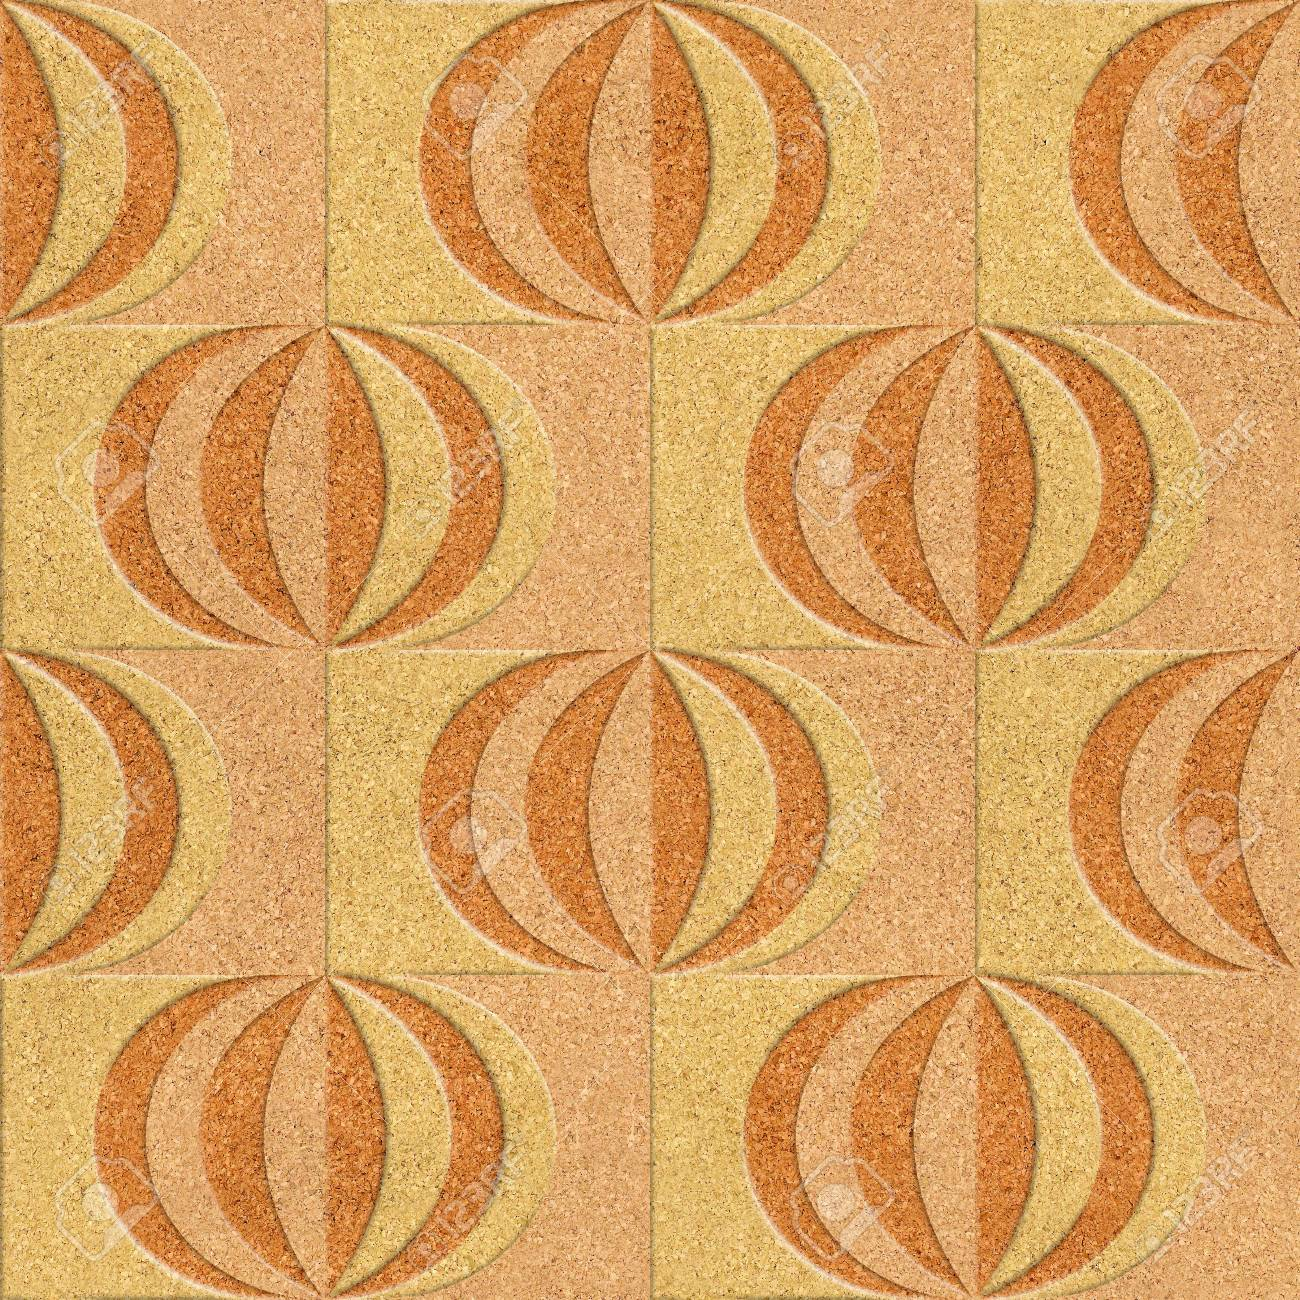 Abstract paneling pattern interior wall panel pattern wall decorative tiles tile pattern